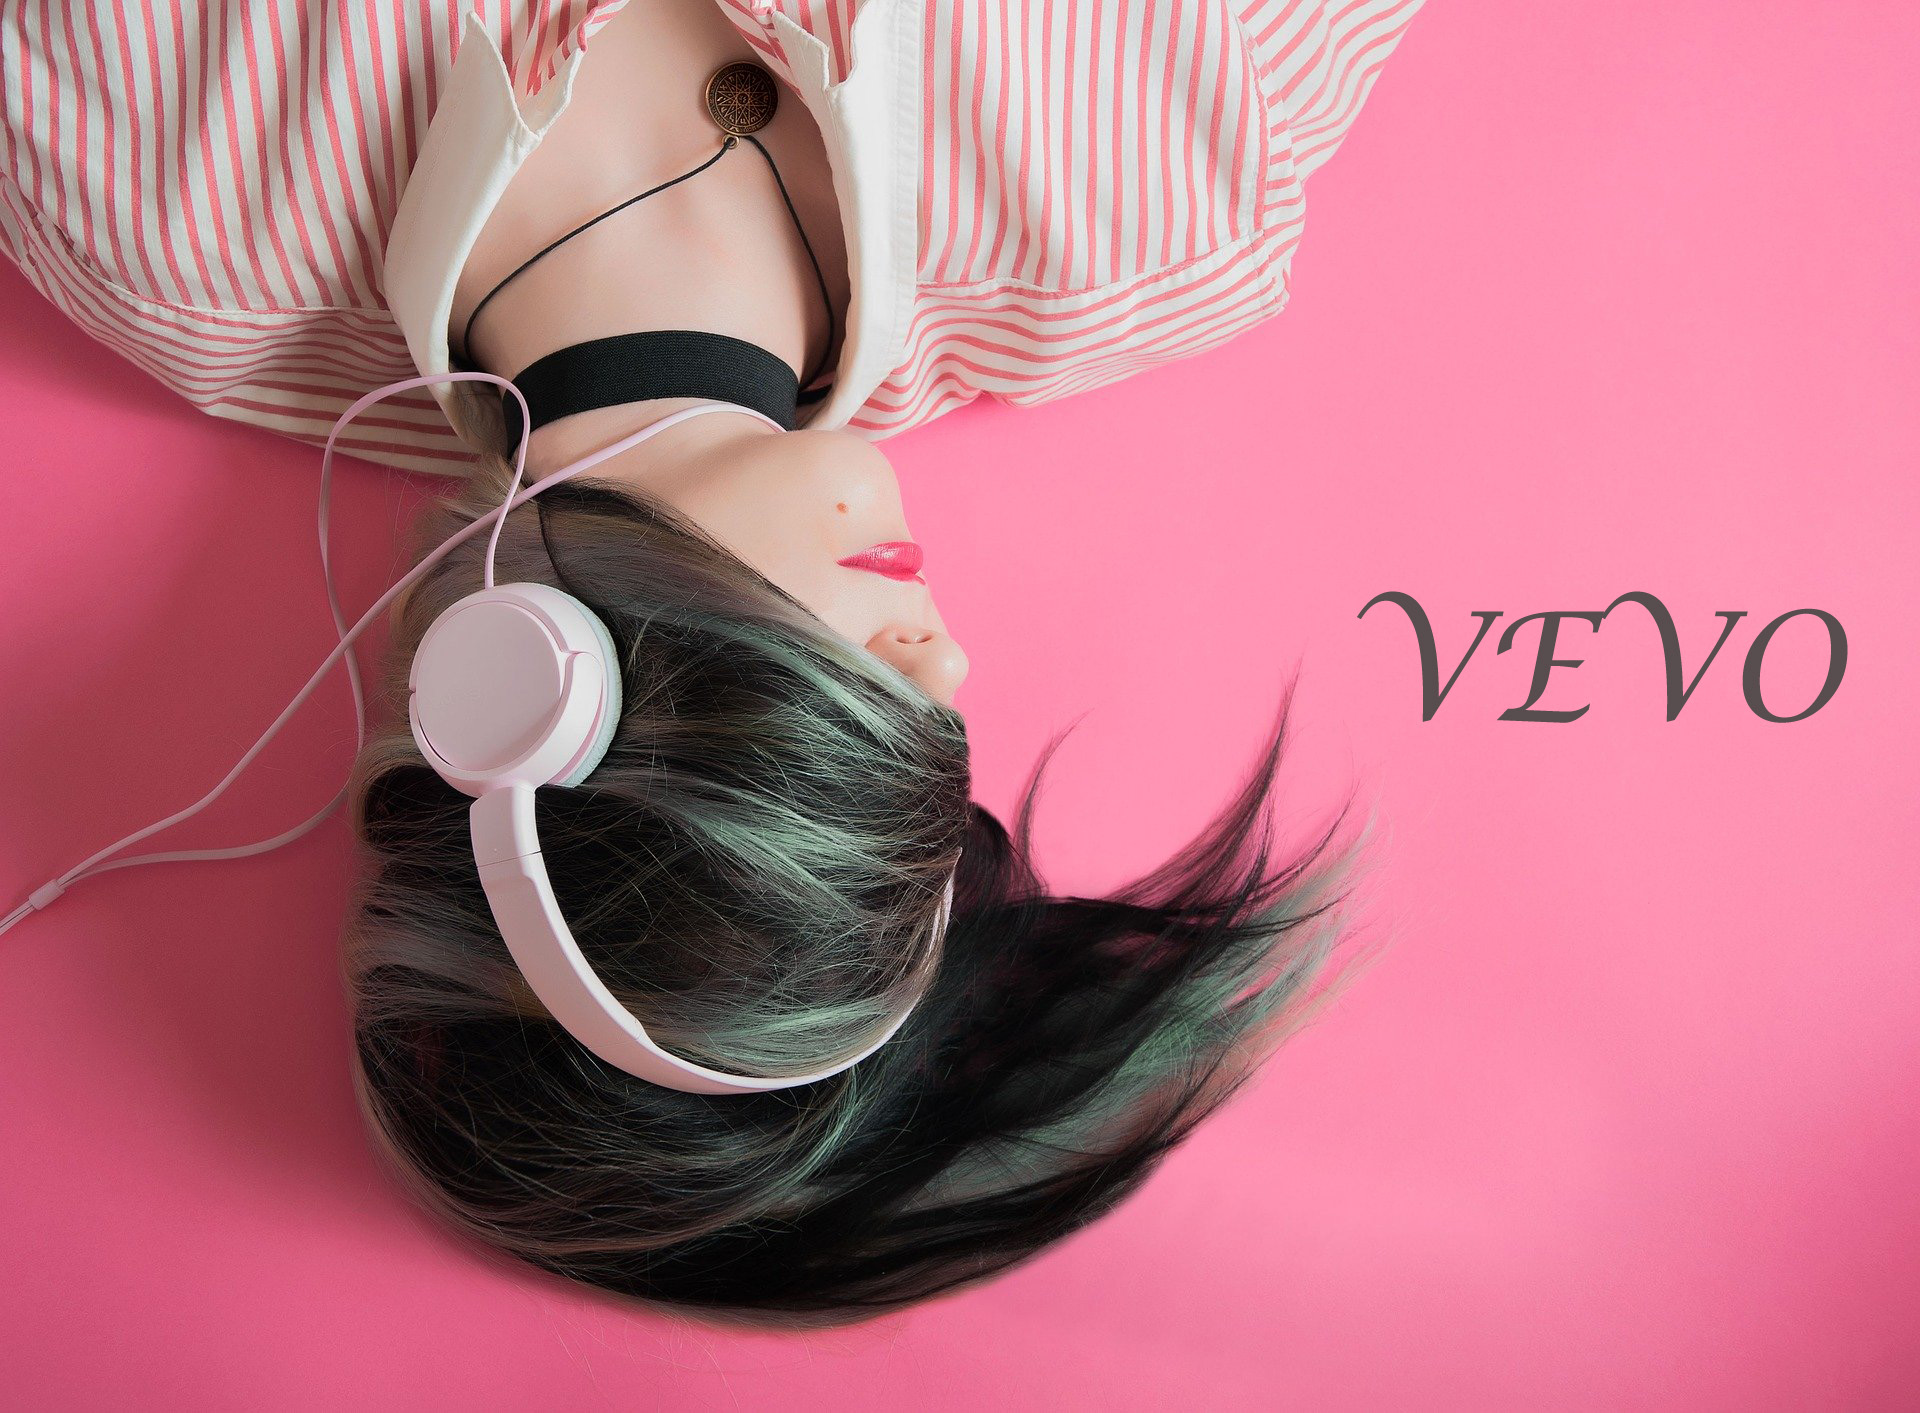 Getting Your Music on Vevo – Everything You Need To Know